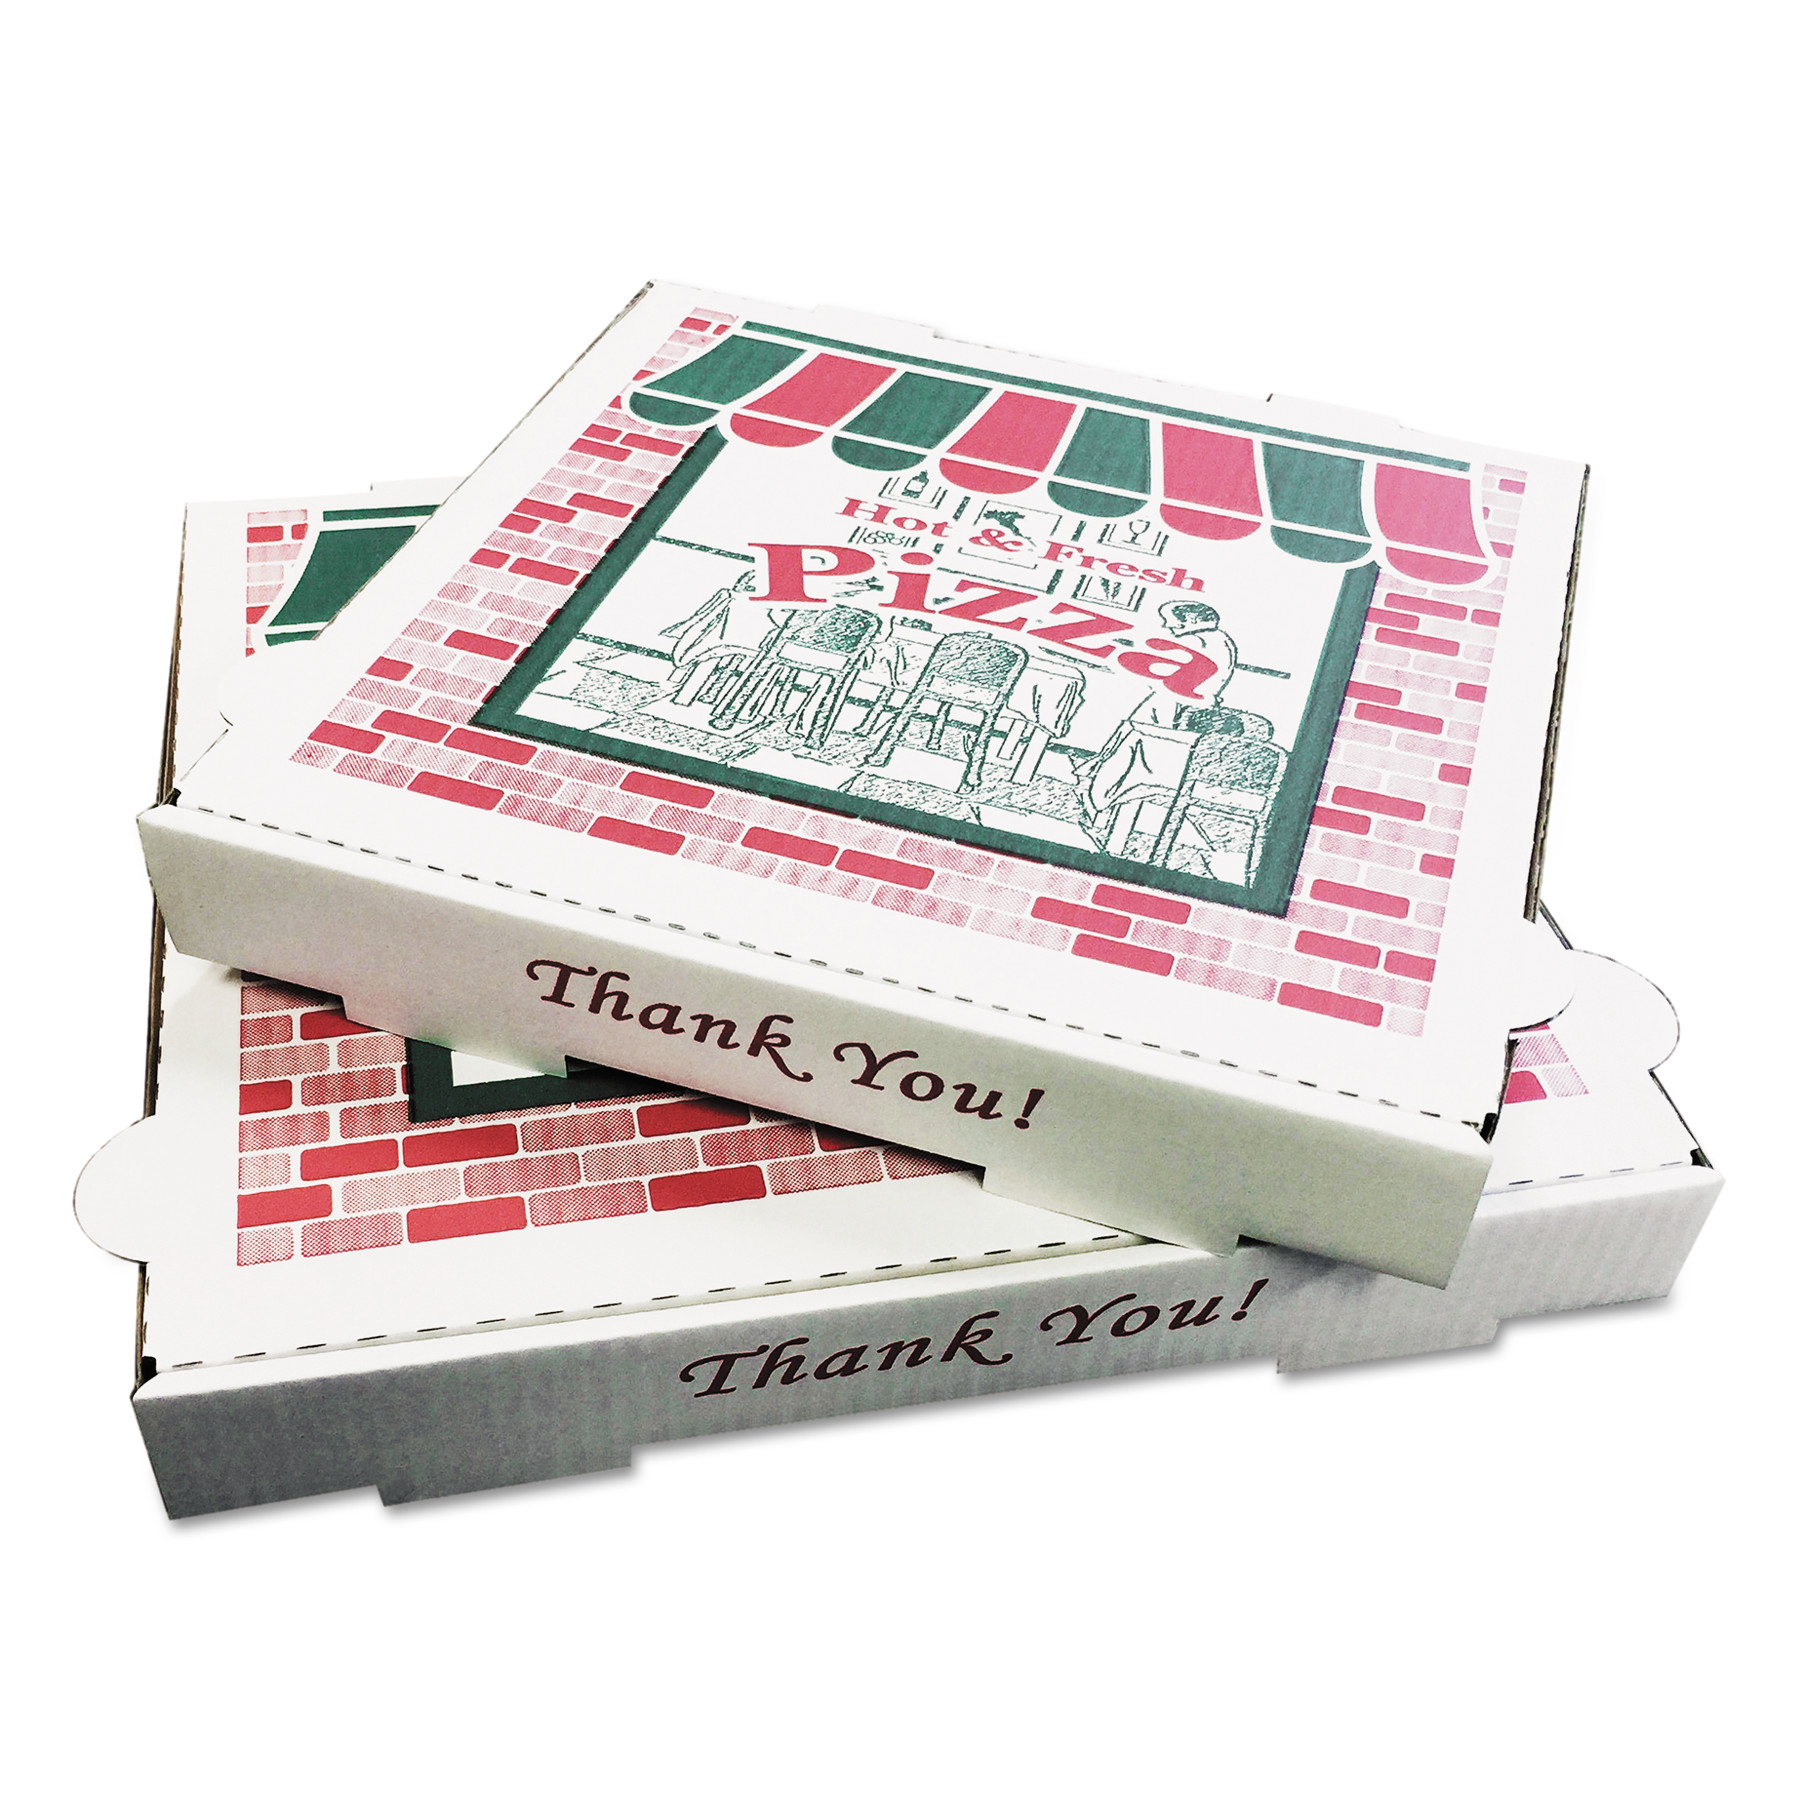 PIZZA Box Takeout Containers, 12in Pizza, White, 12w x 12d x 1 3/4h, 50/Bundle